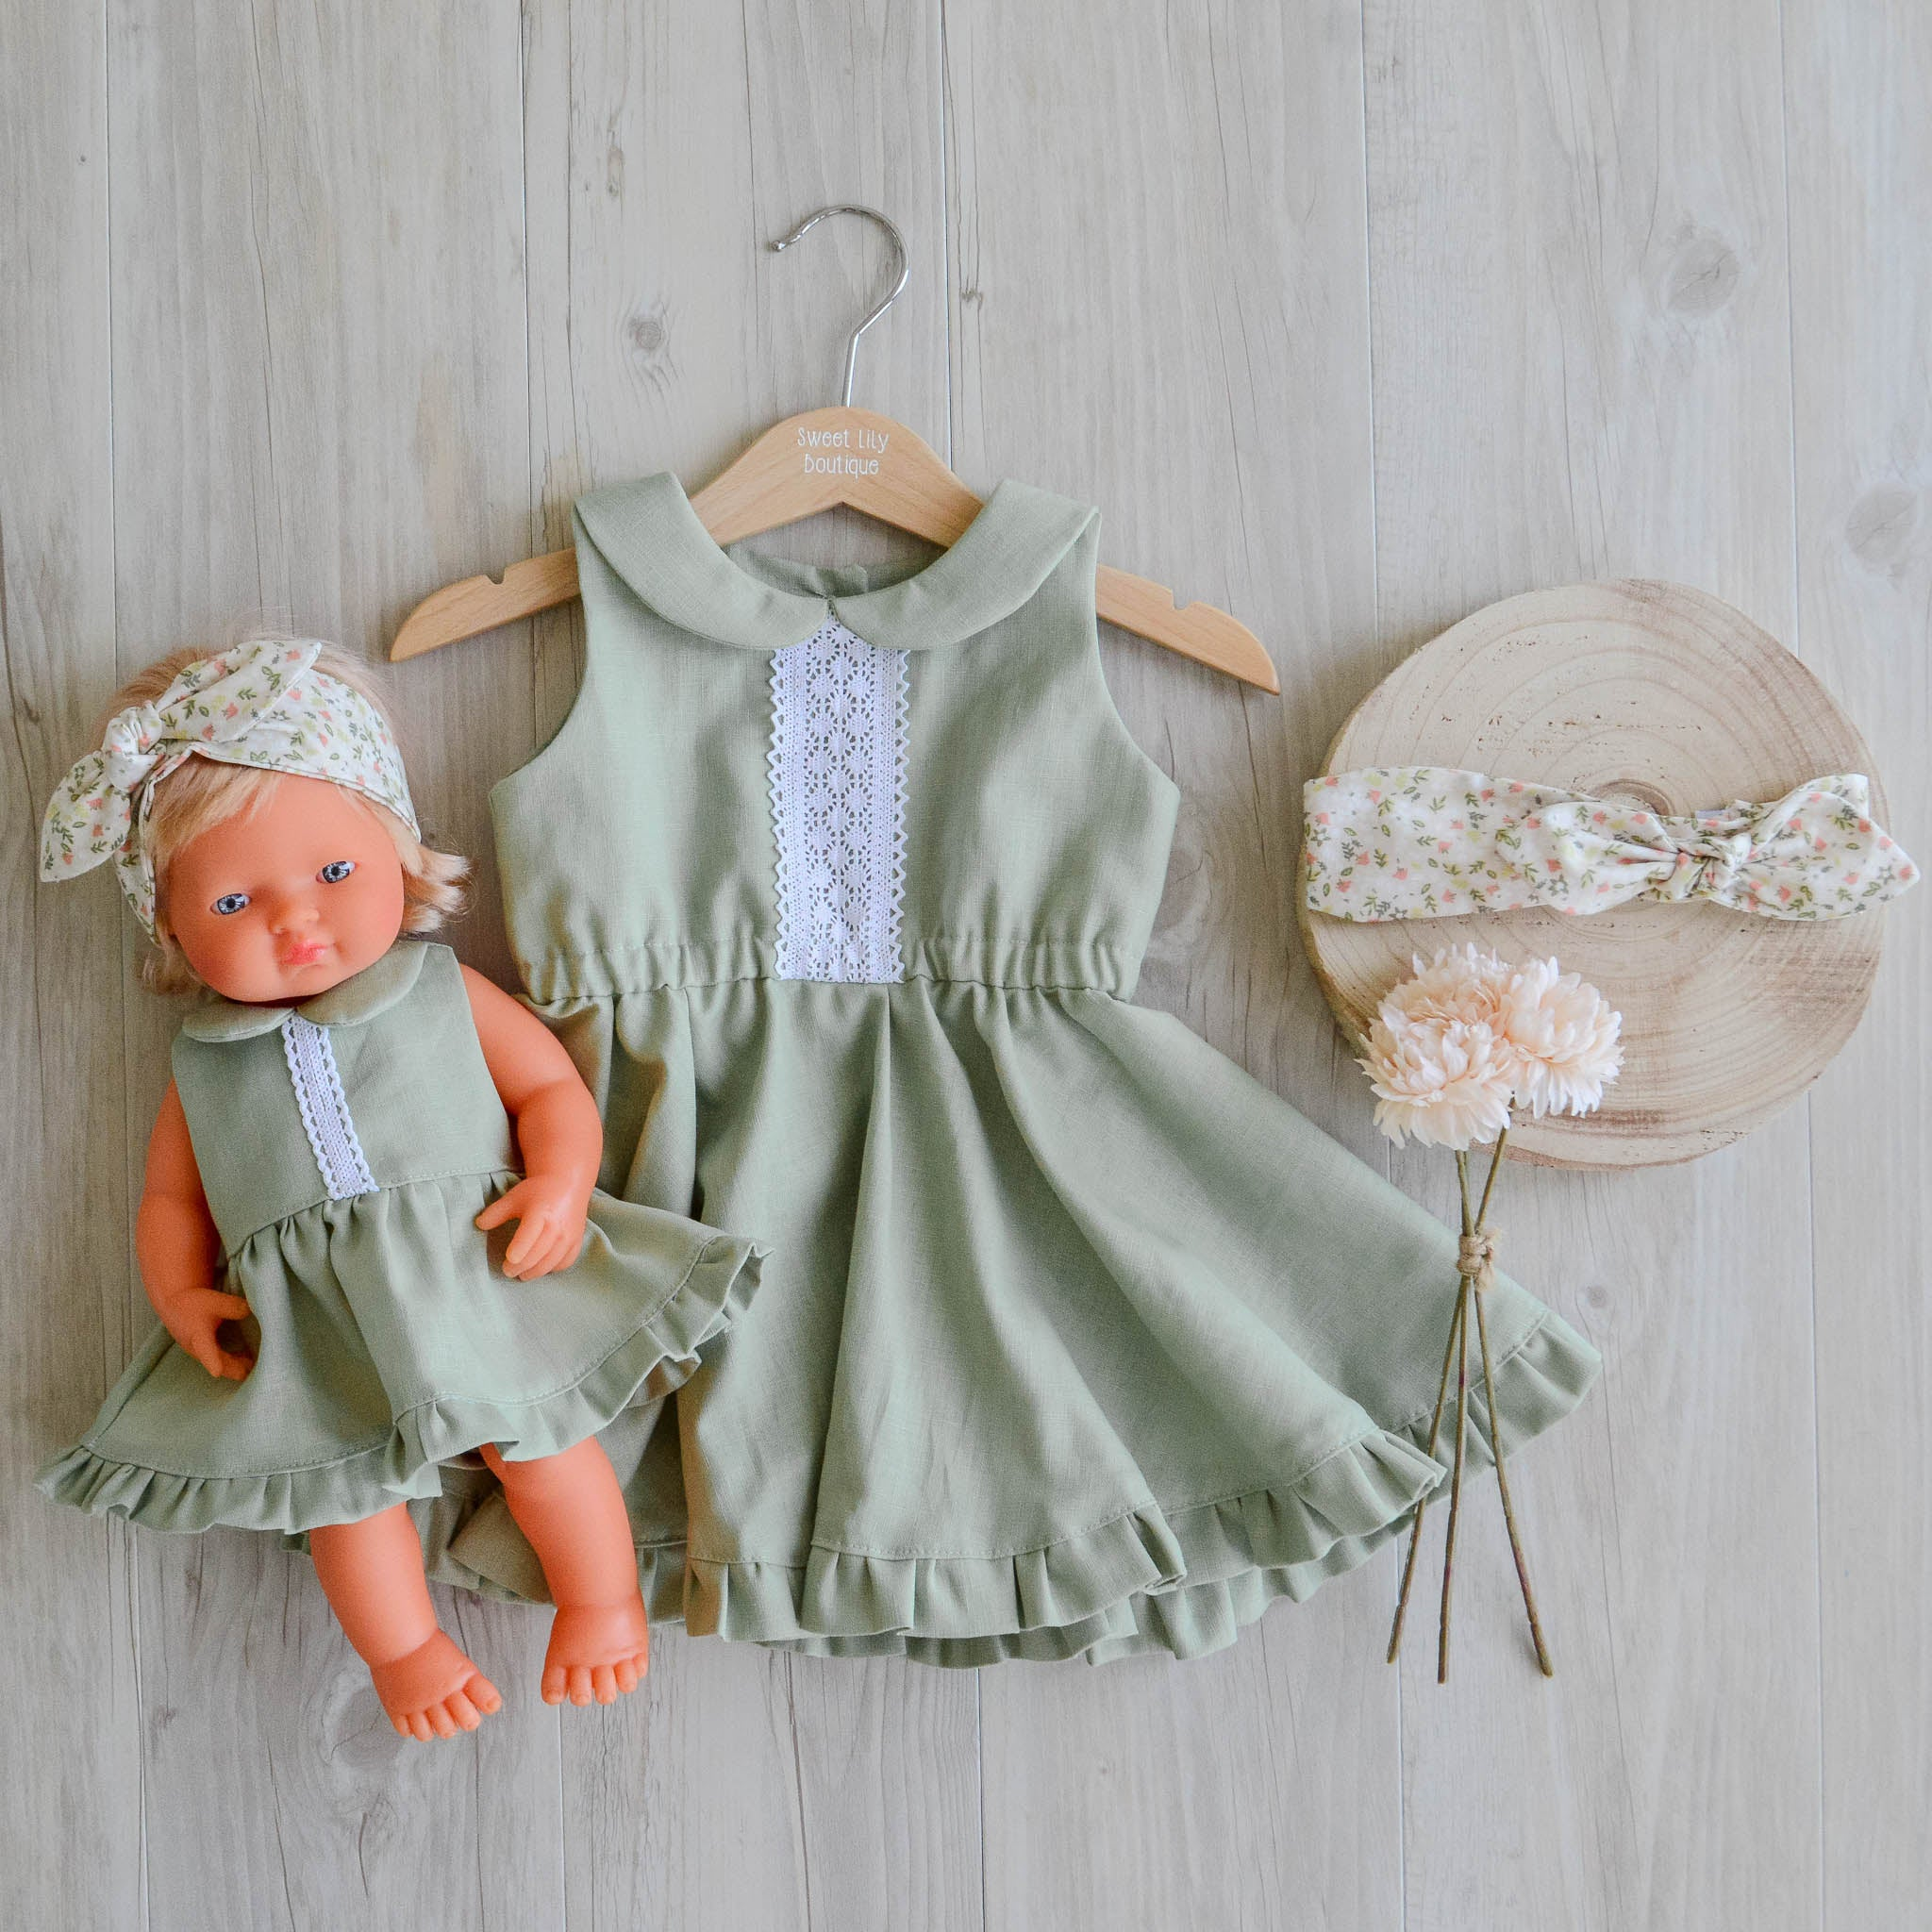 ff0897898 DOLLS CLOTHING - Sweet Lily Boutique